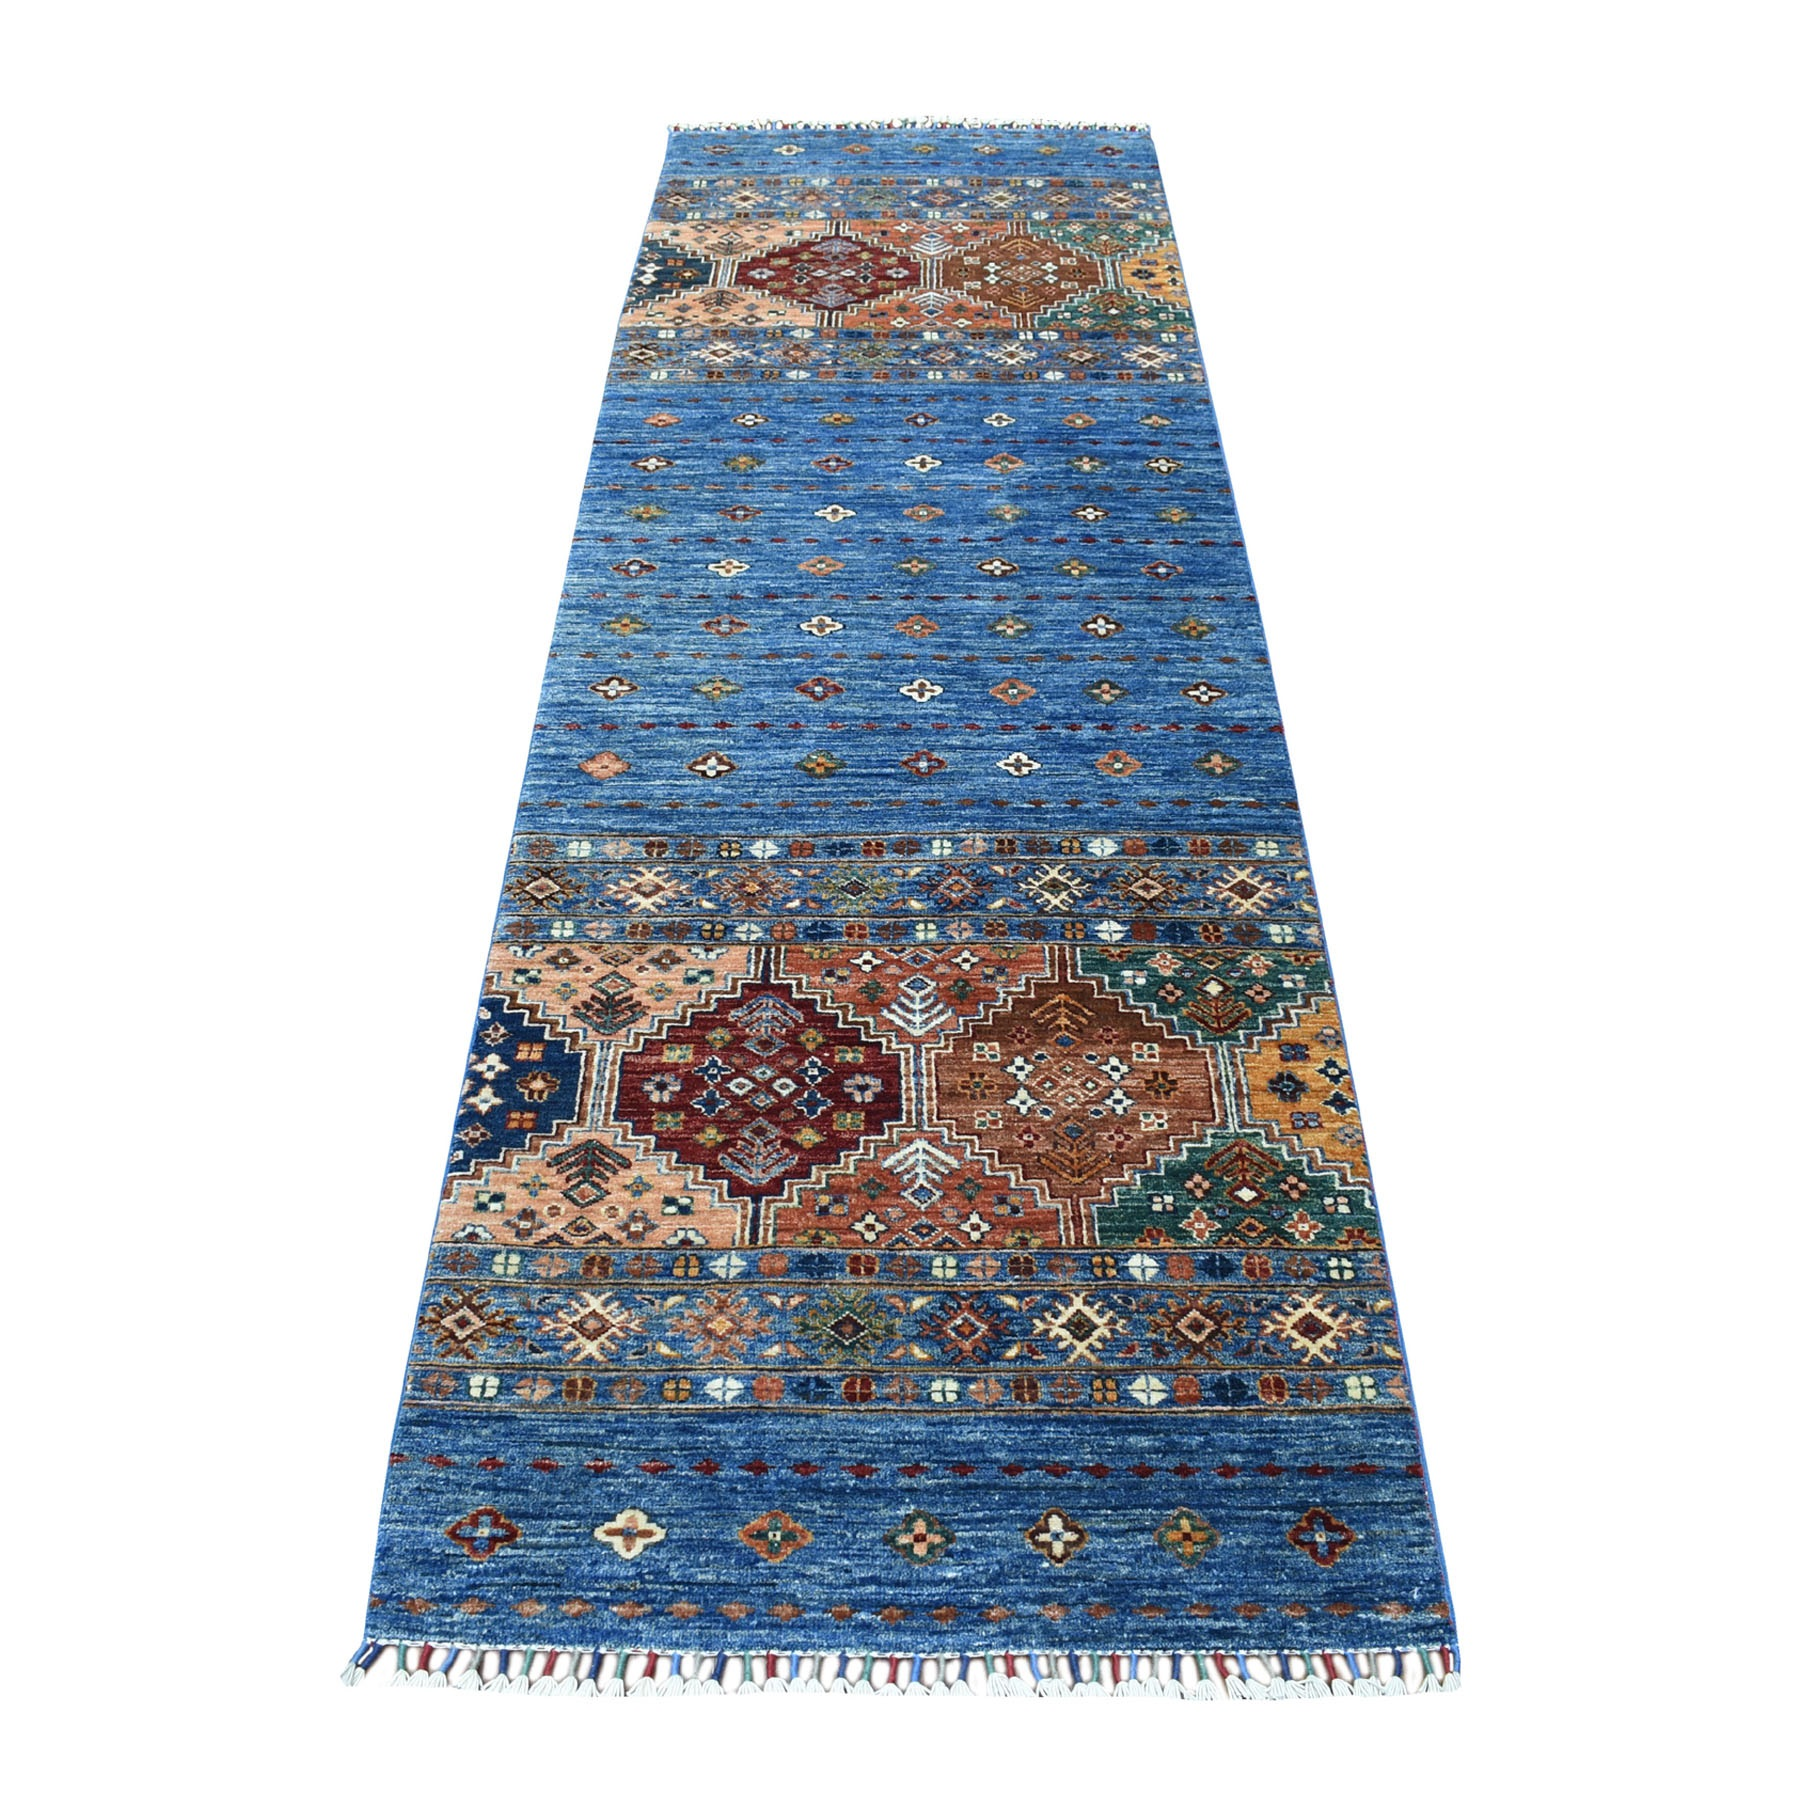 "2'9""x9'2""  Denim Blue Super Kazak Khorjin Design With Colorful Tassels Hand Knotted Vibrant Wool Oriental Runner Rug"